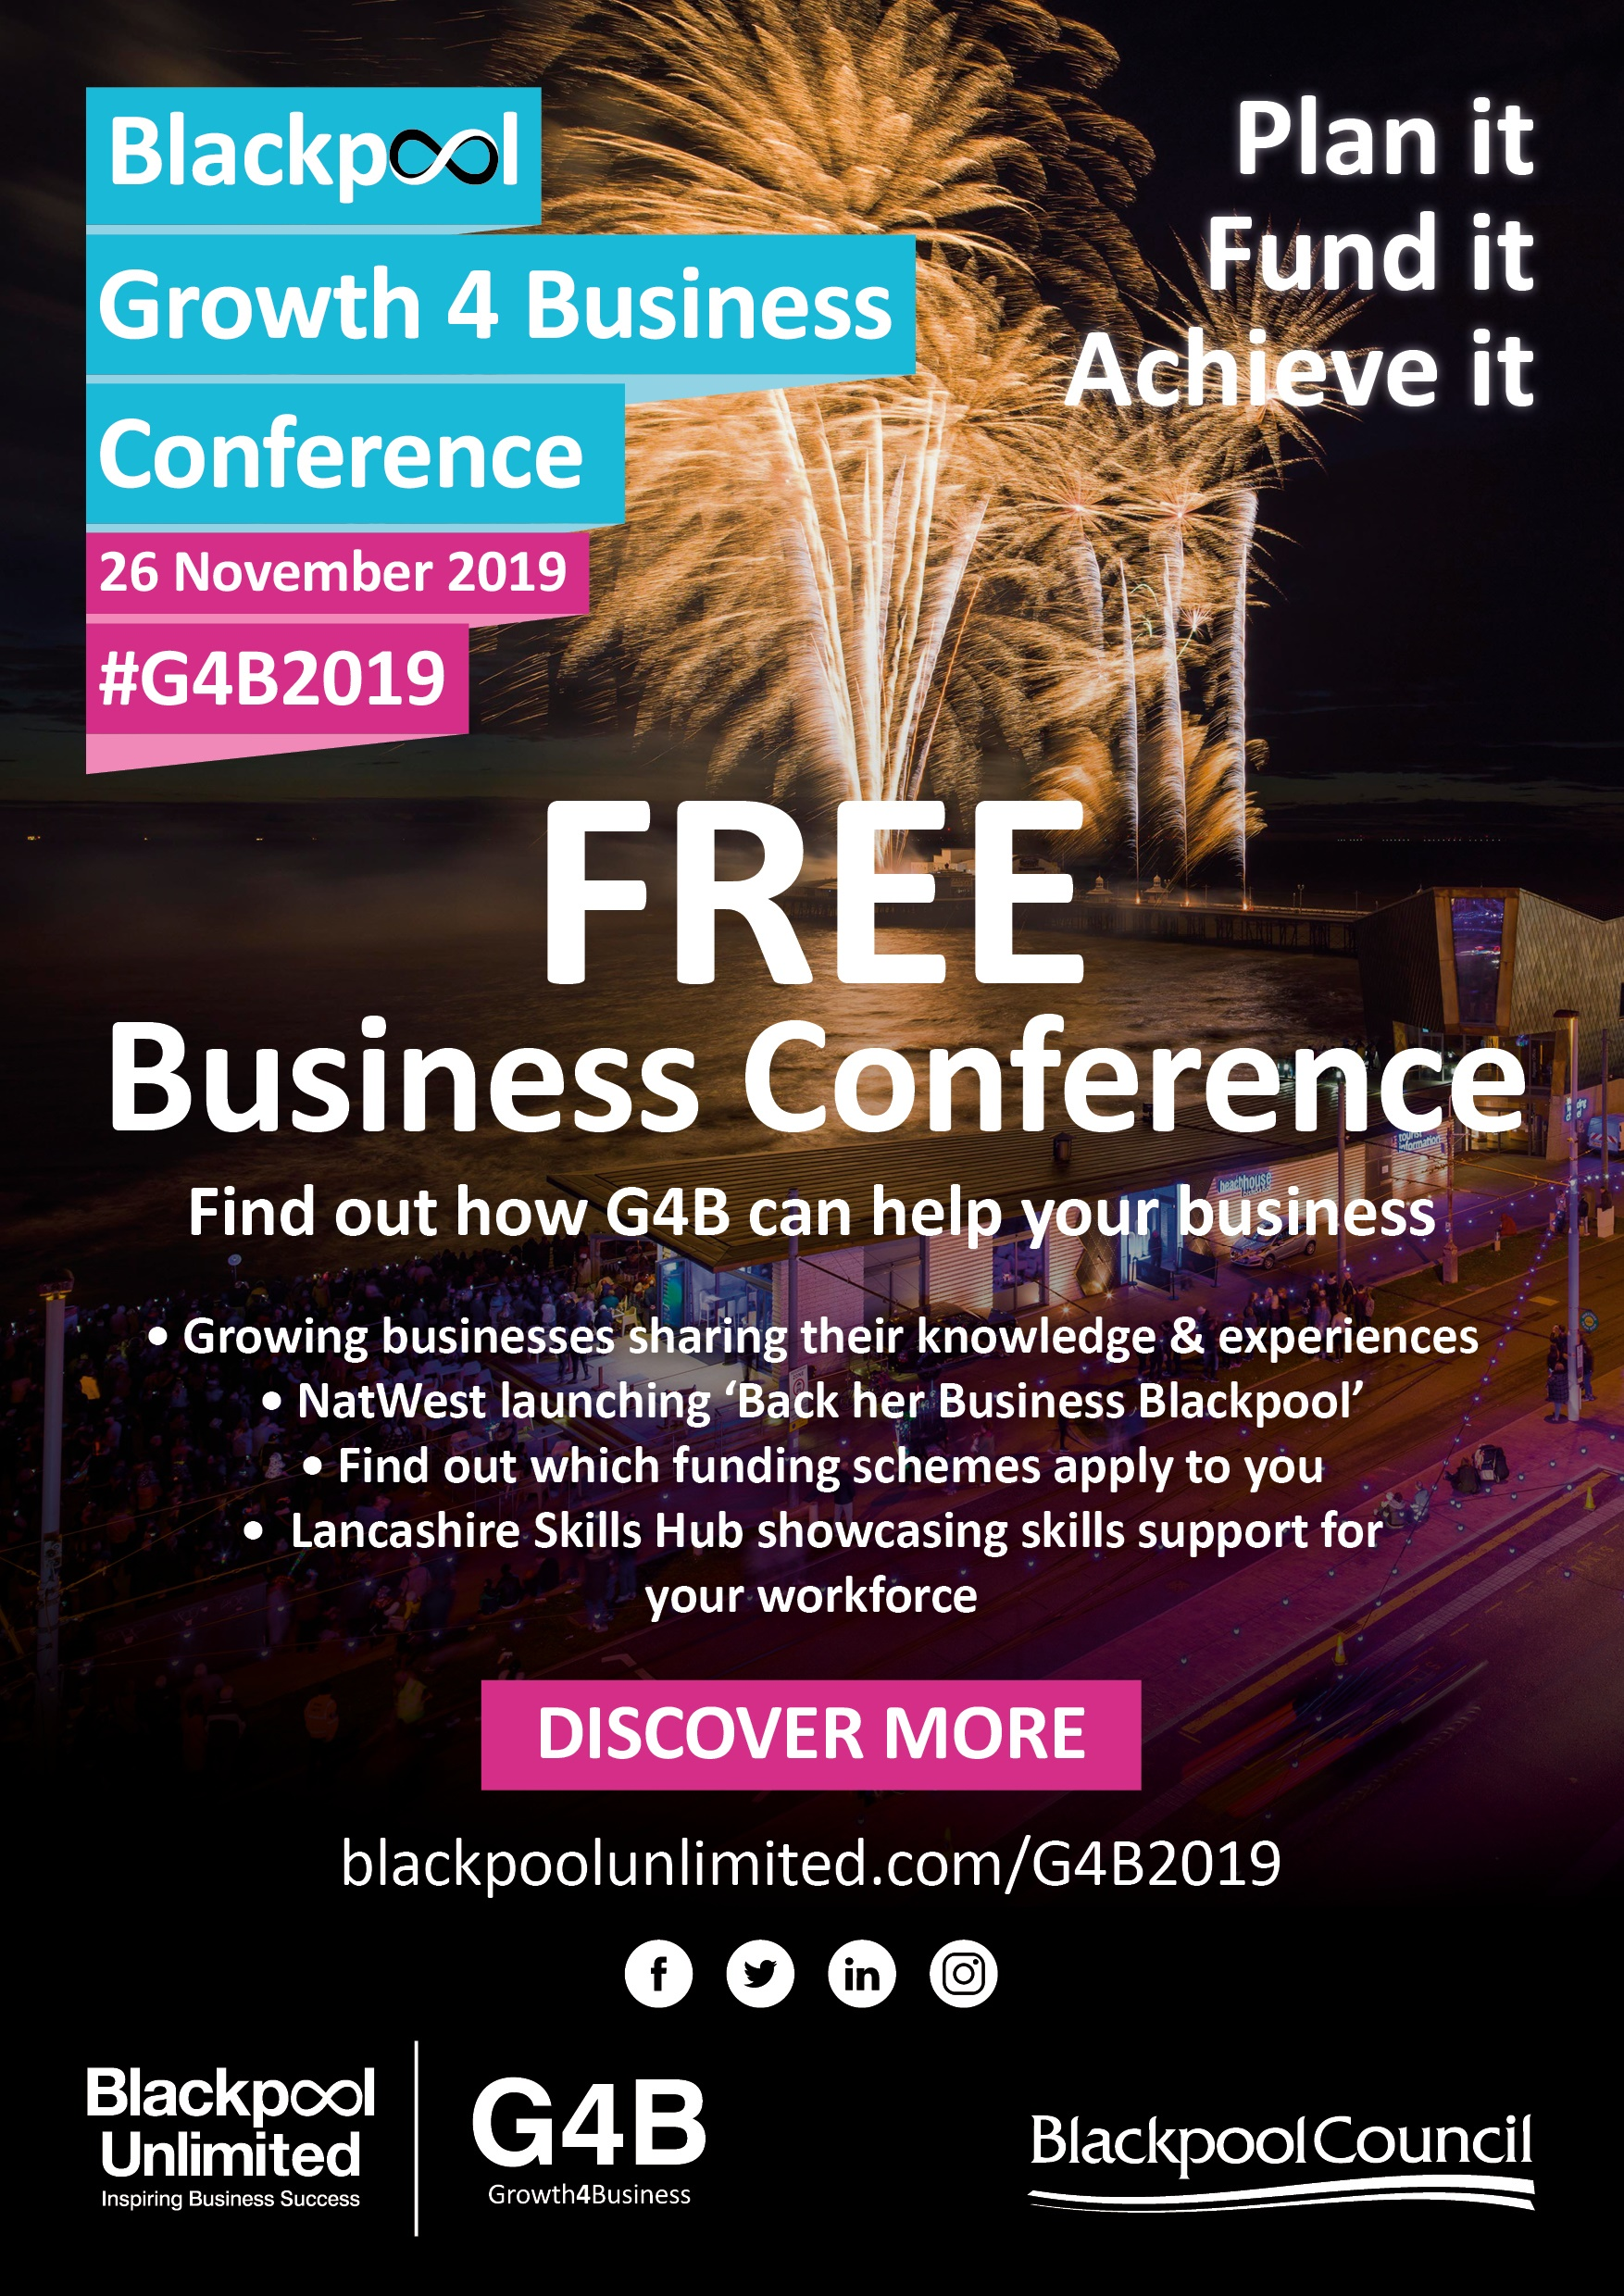 Blackpool Growth 4 Business Conference - 8 Questions Answered